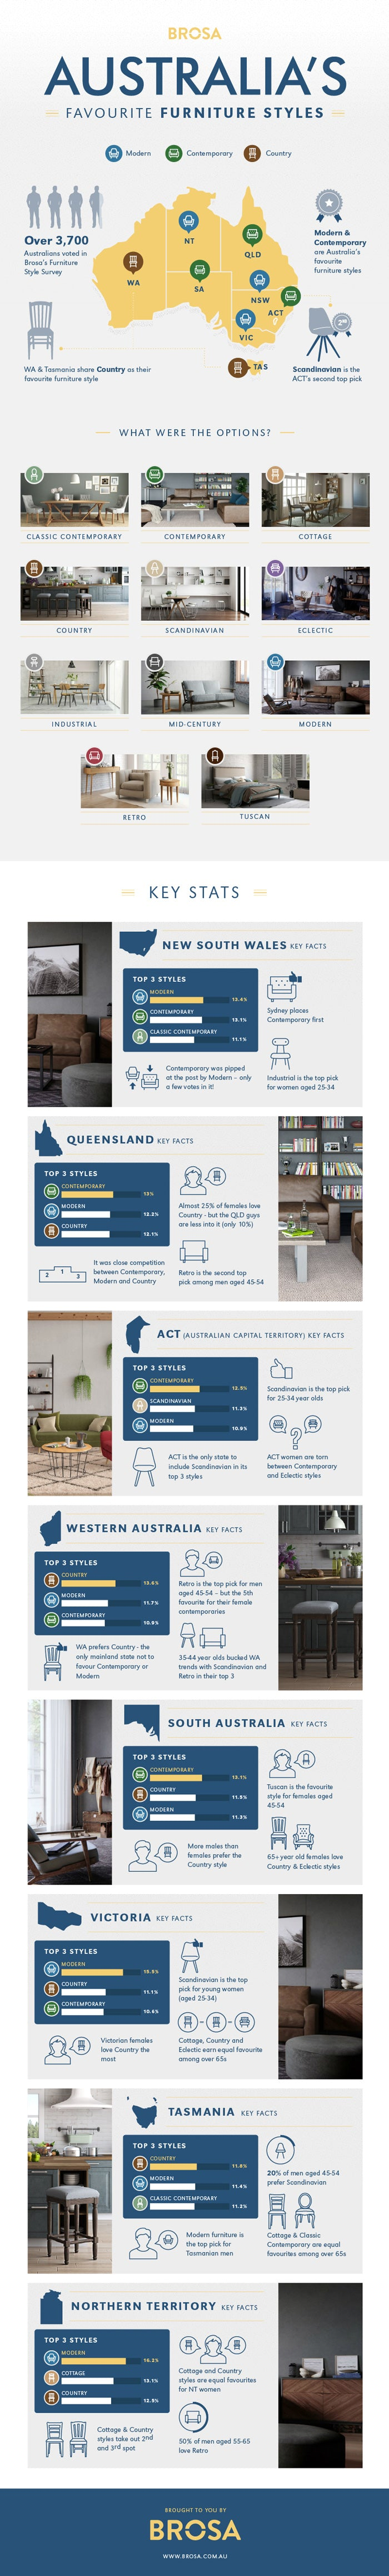 Australia's Favourite Furniture Styles